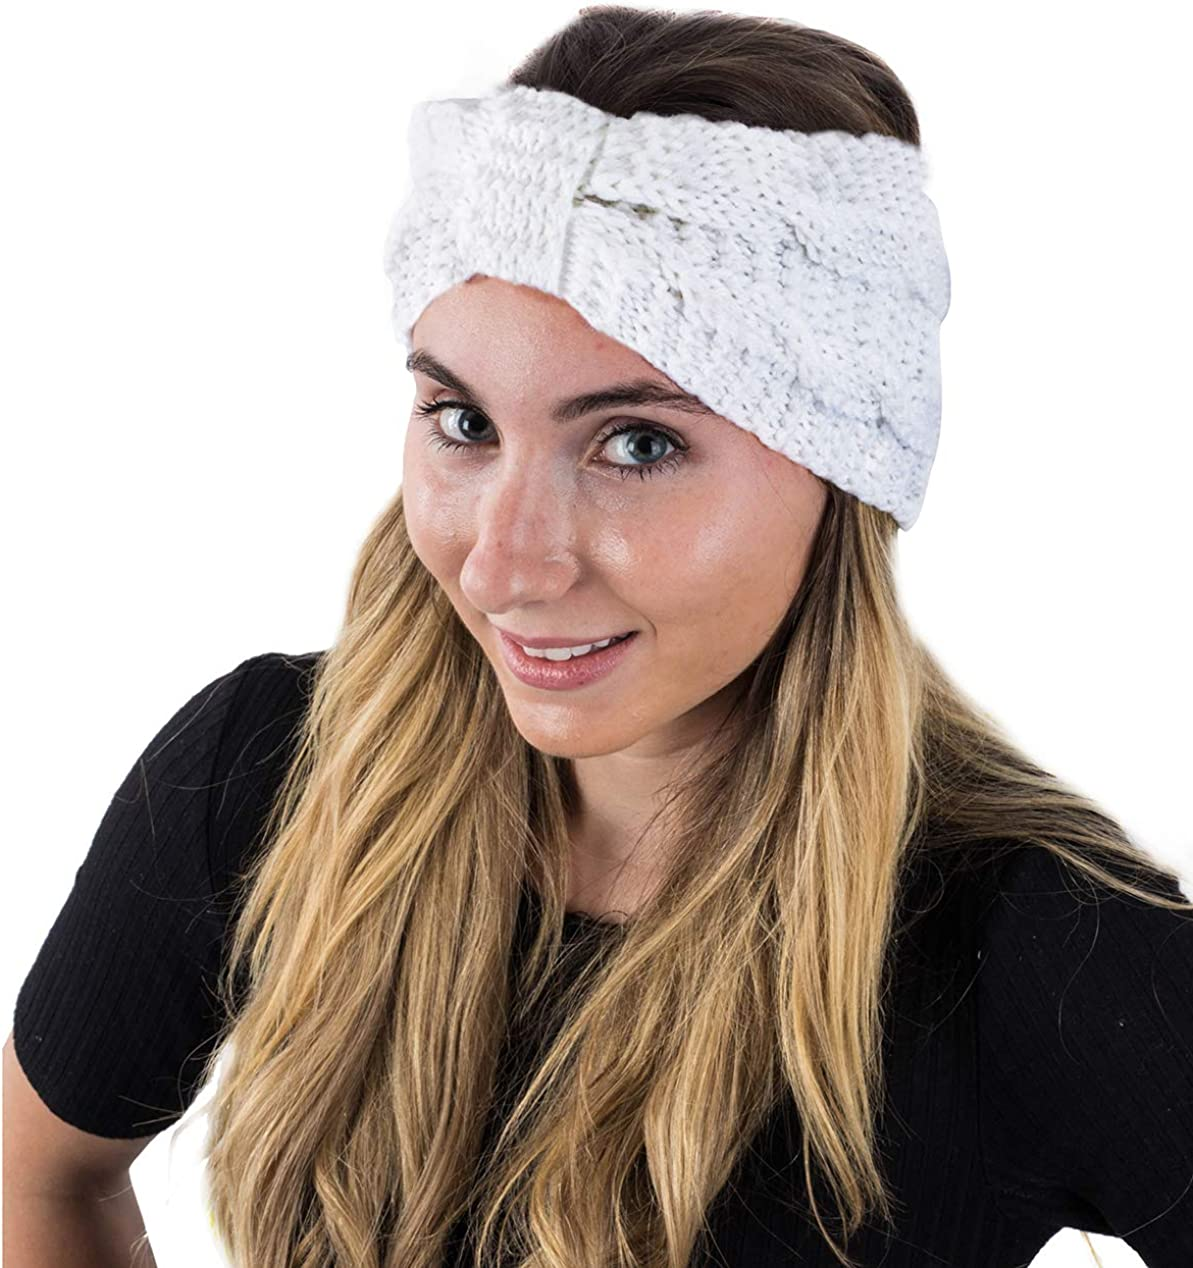 Winter Headband - Knit...